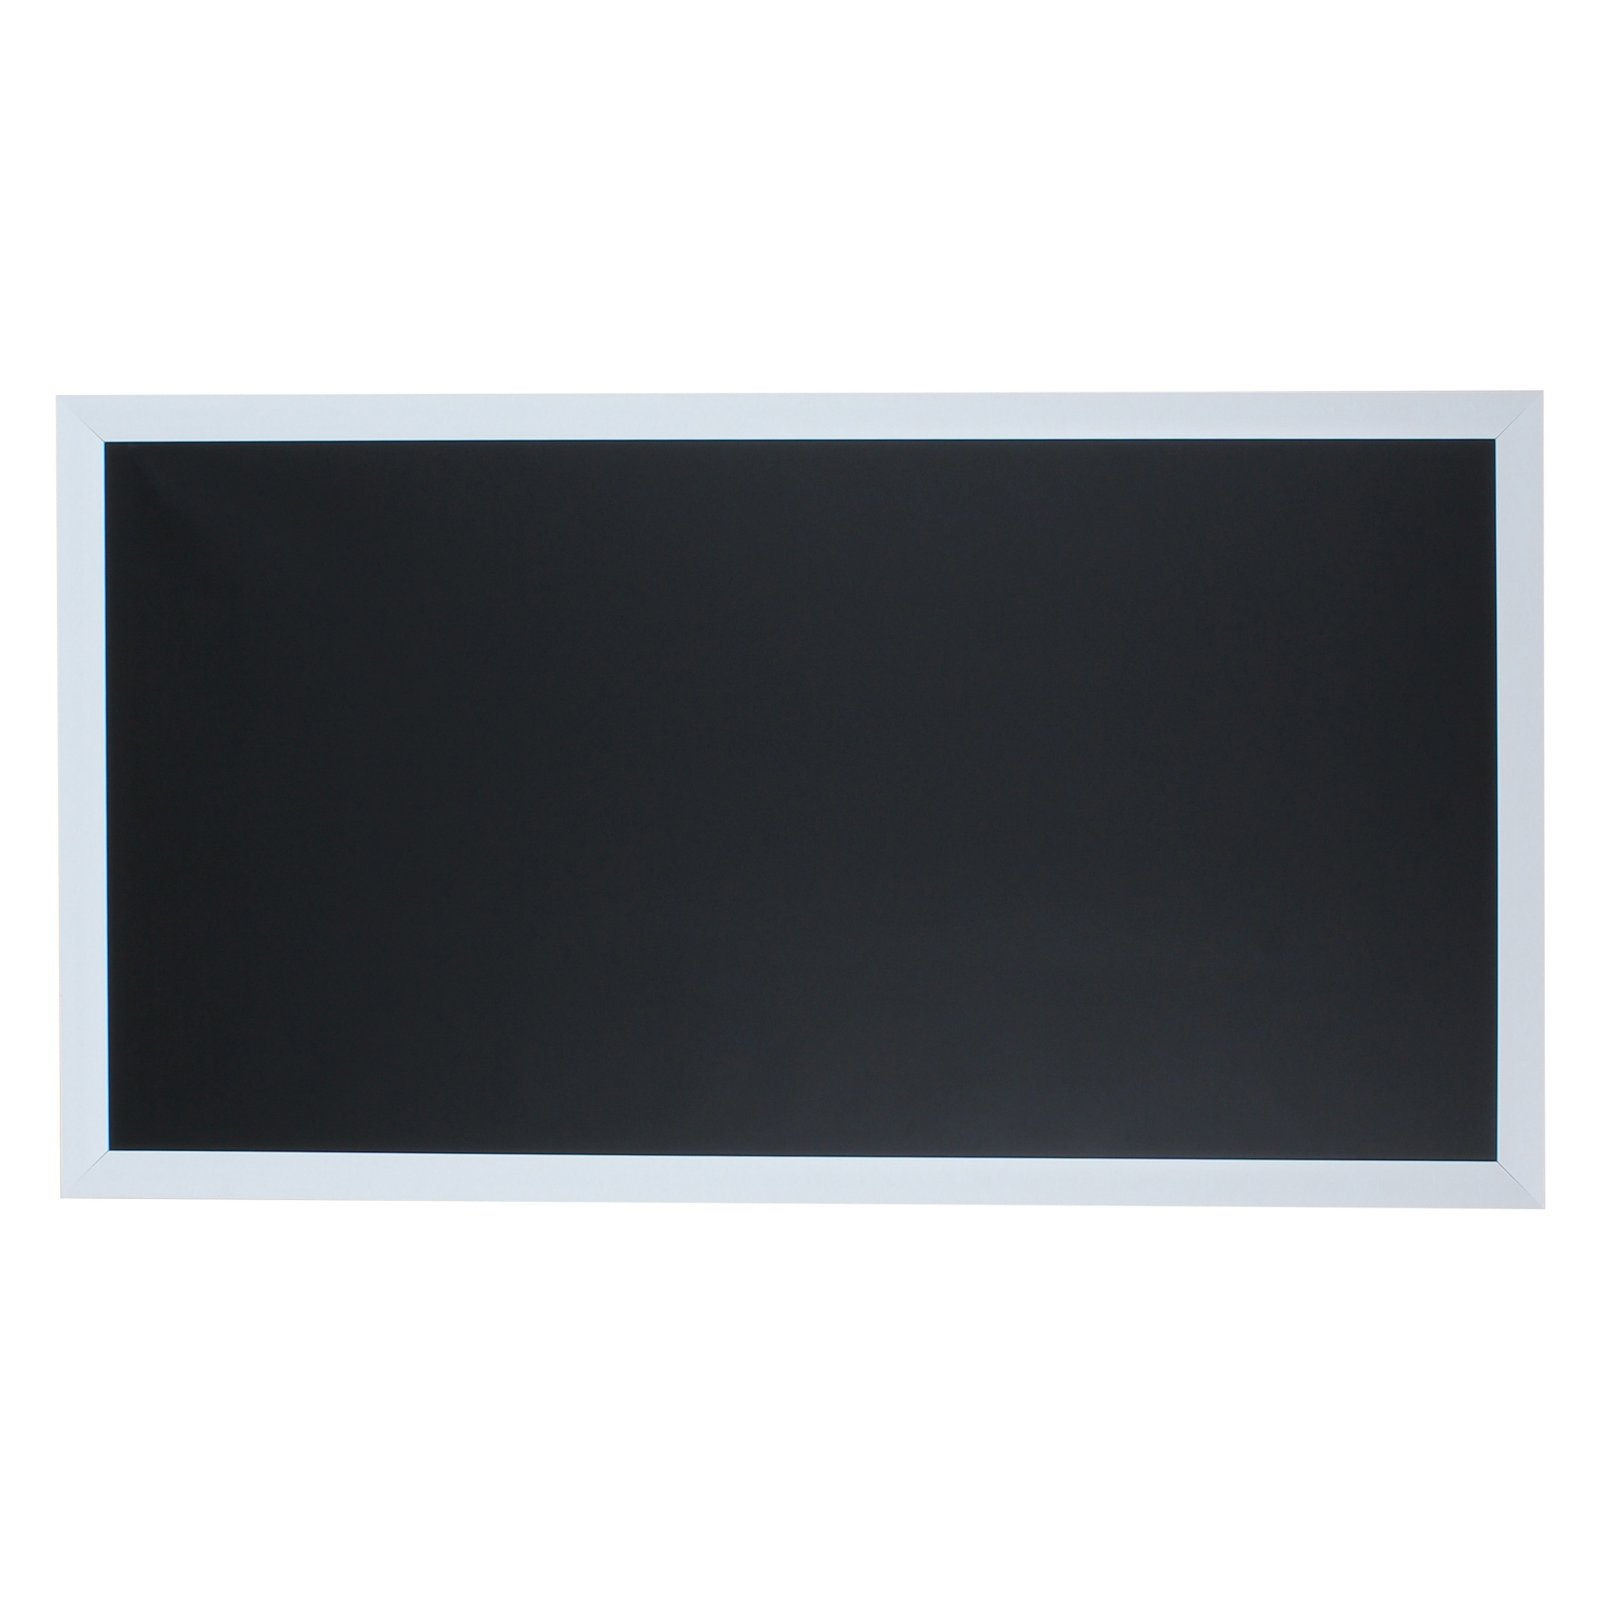 DesignOvation Beatrice Wall Mounted Oversized Framed Magnetic Chalkboard by Uniek